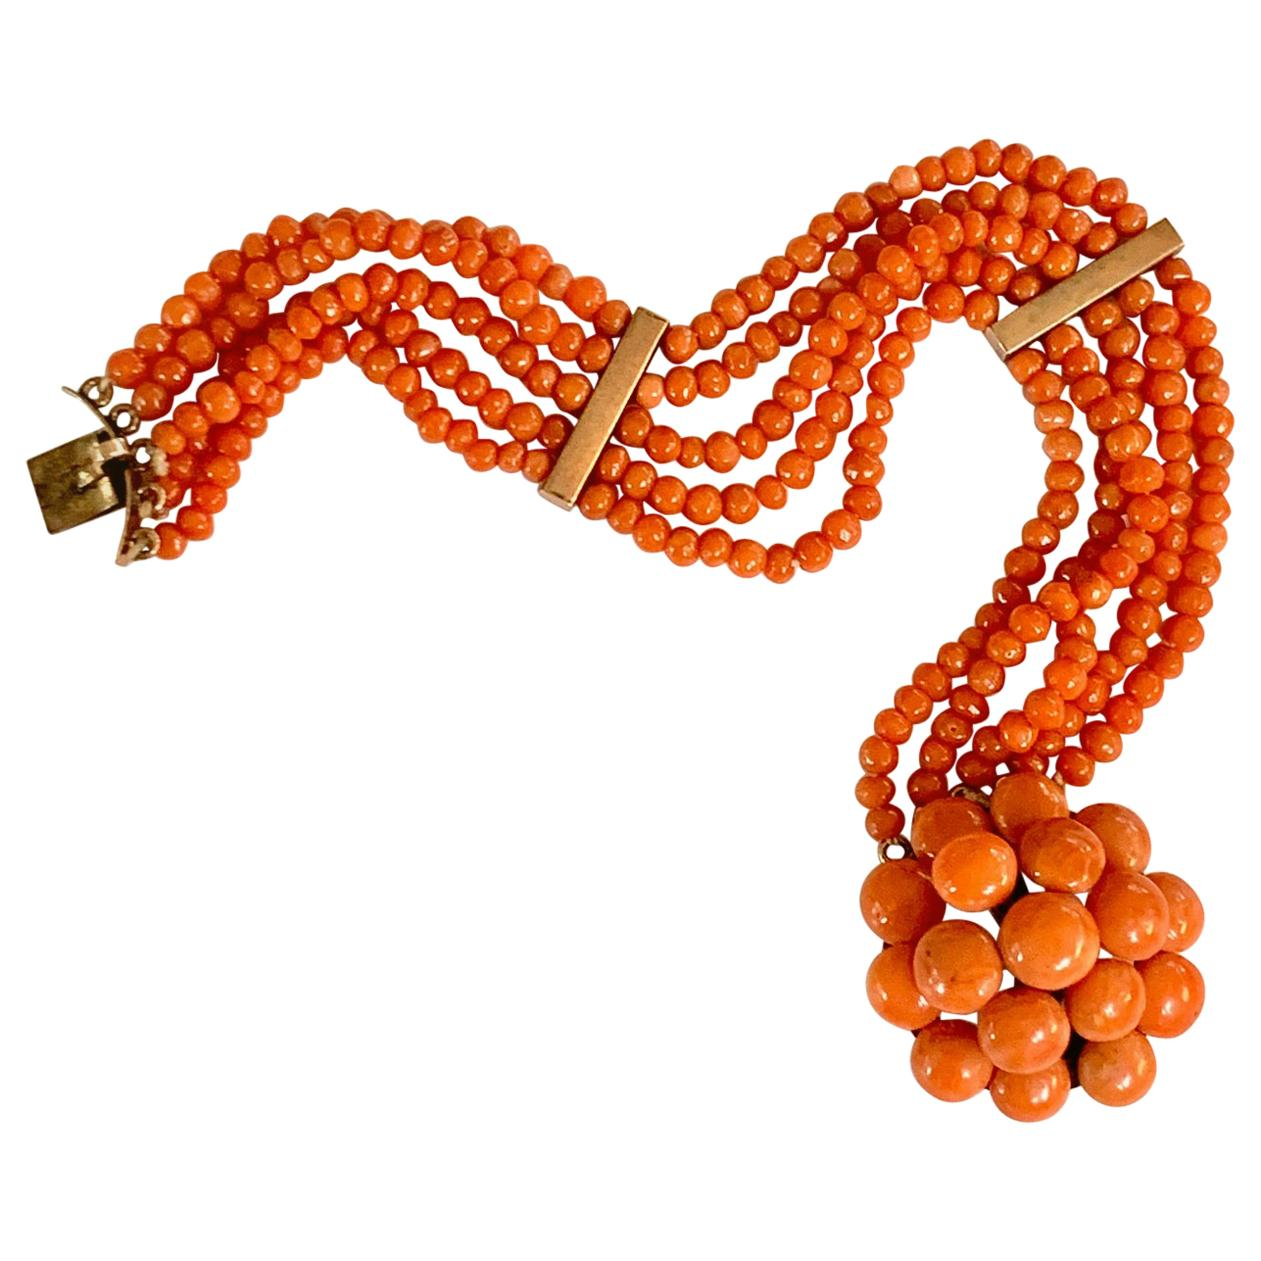 Antique 5-Strand Salmon Coral Bracelet with 14 Karat Rose Gold Clasp and Spacers